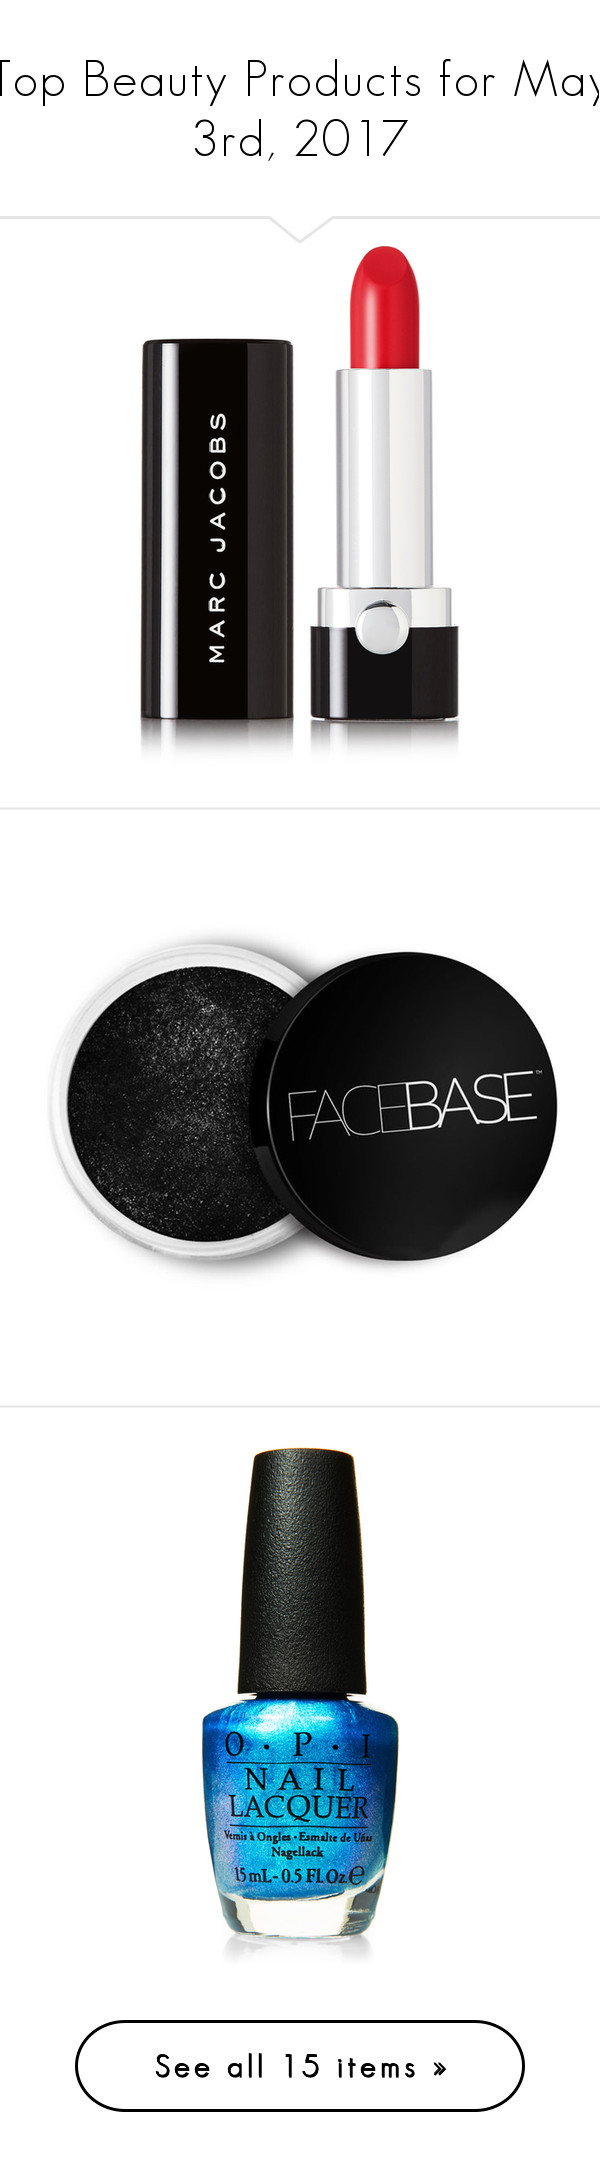 """""""Top Beauty Products for May 3rd, 2017"""" by polyvore liked"""